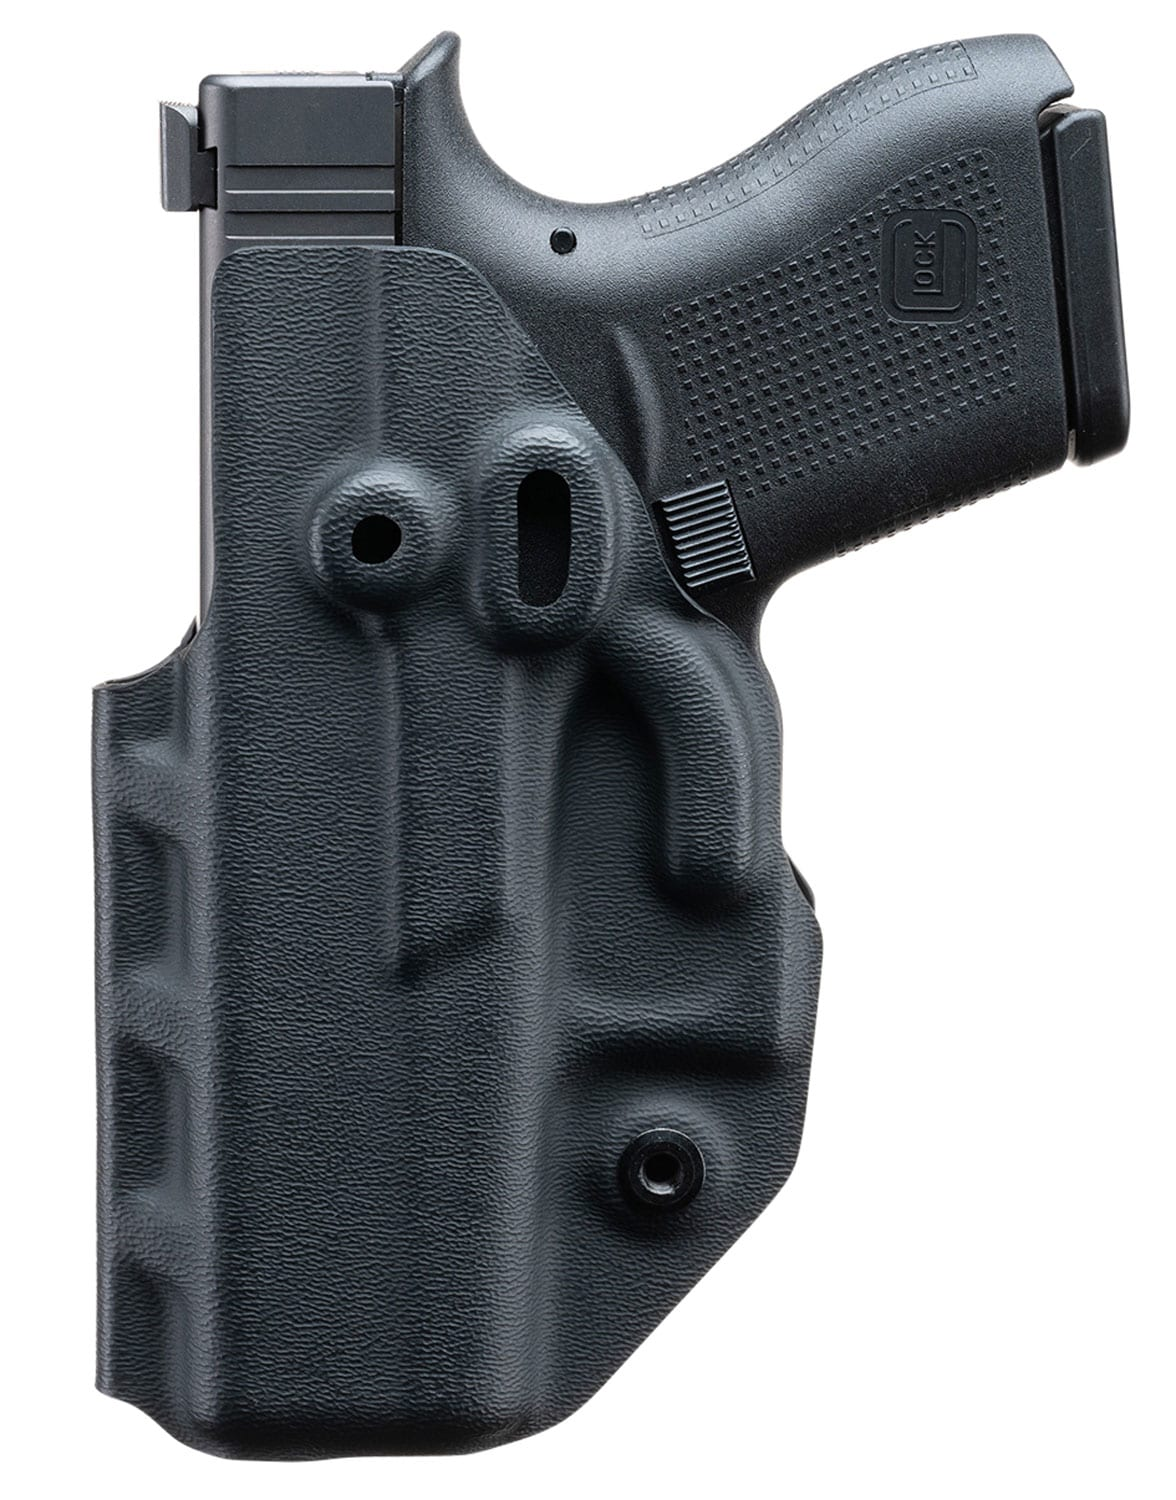 CRUCIAL CONCEALMENT COVERT